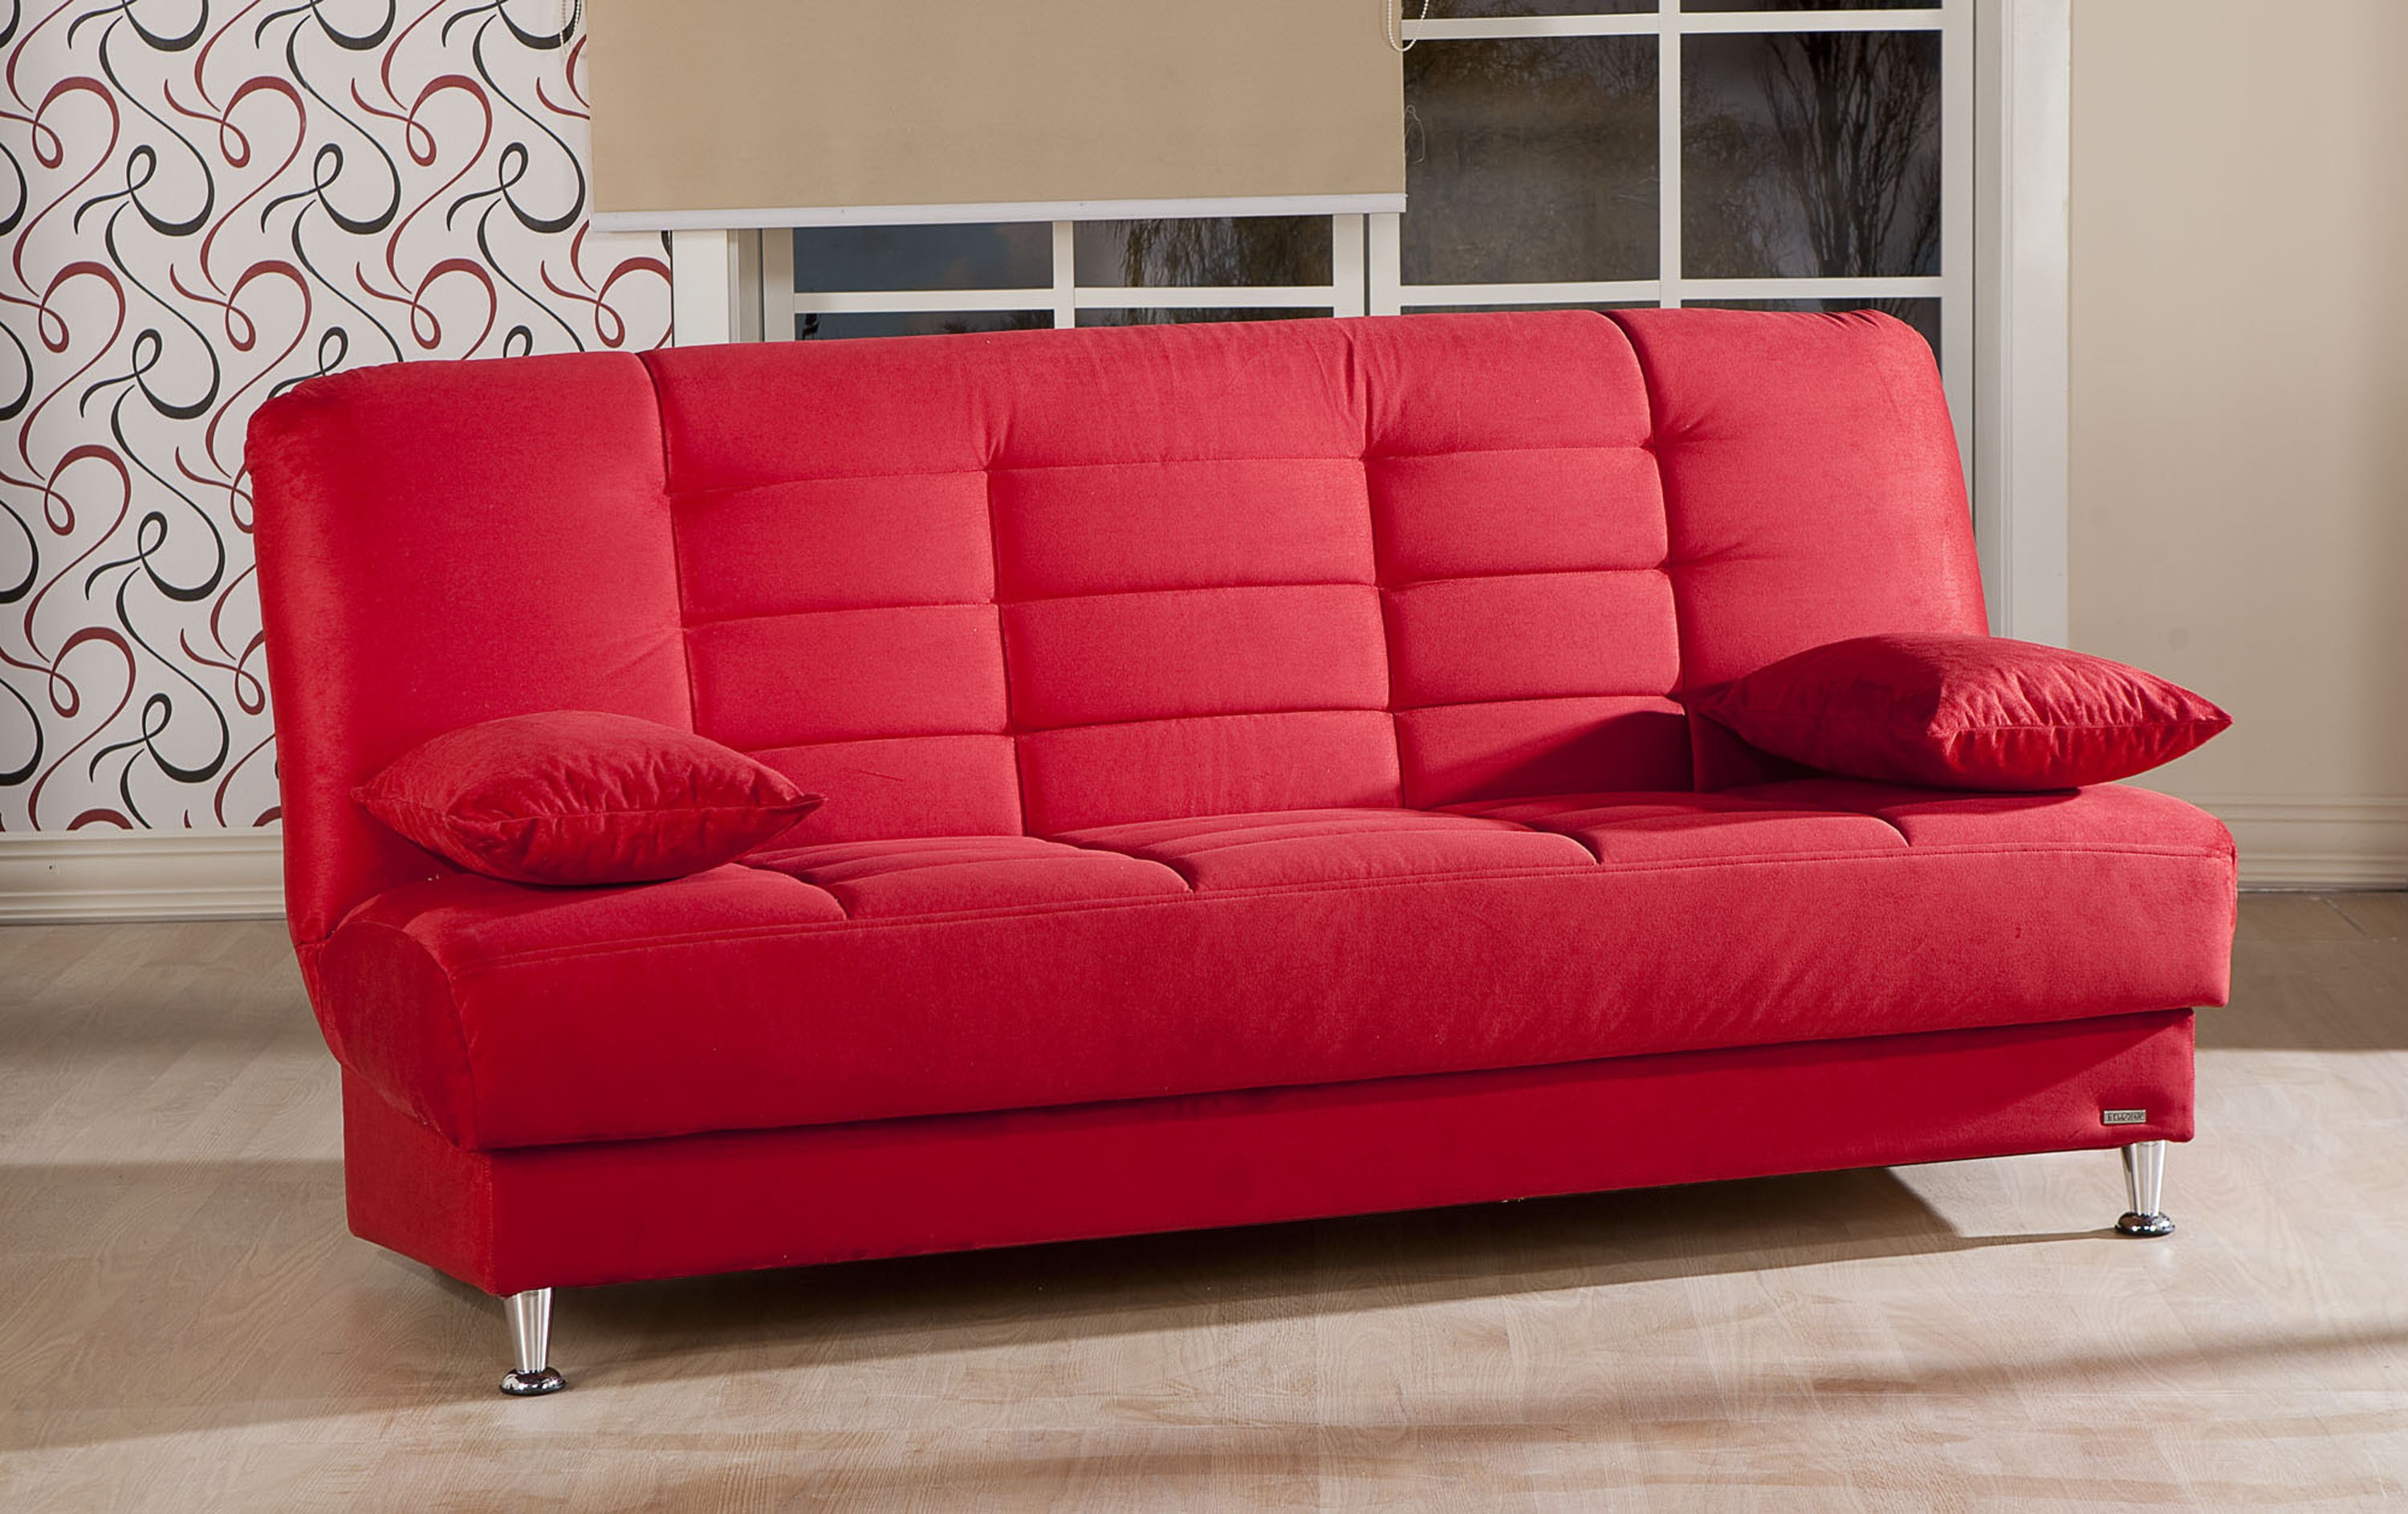 The Nuiances of Comfortable Modern Sofa